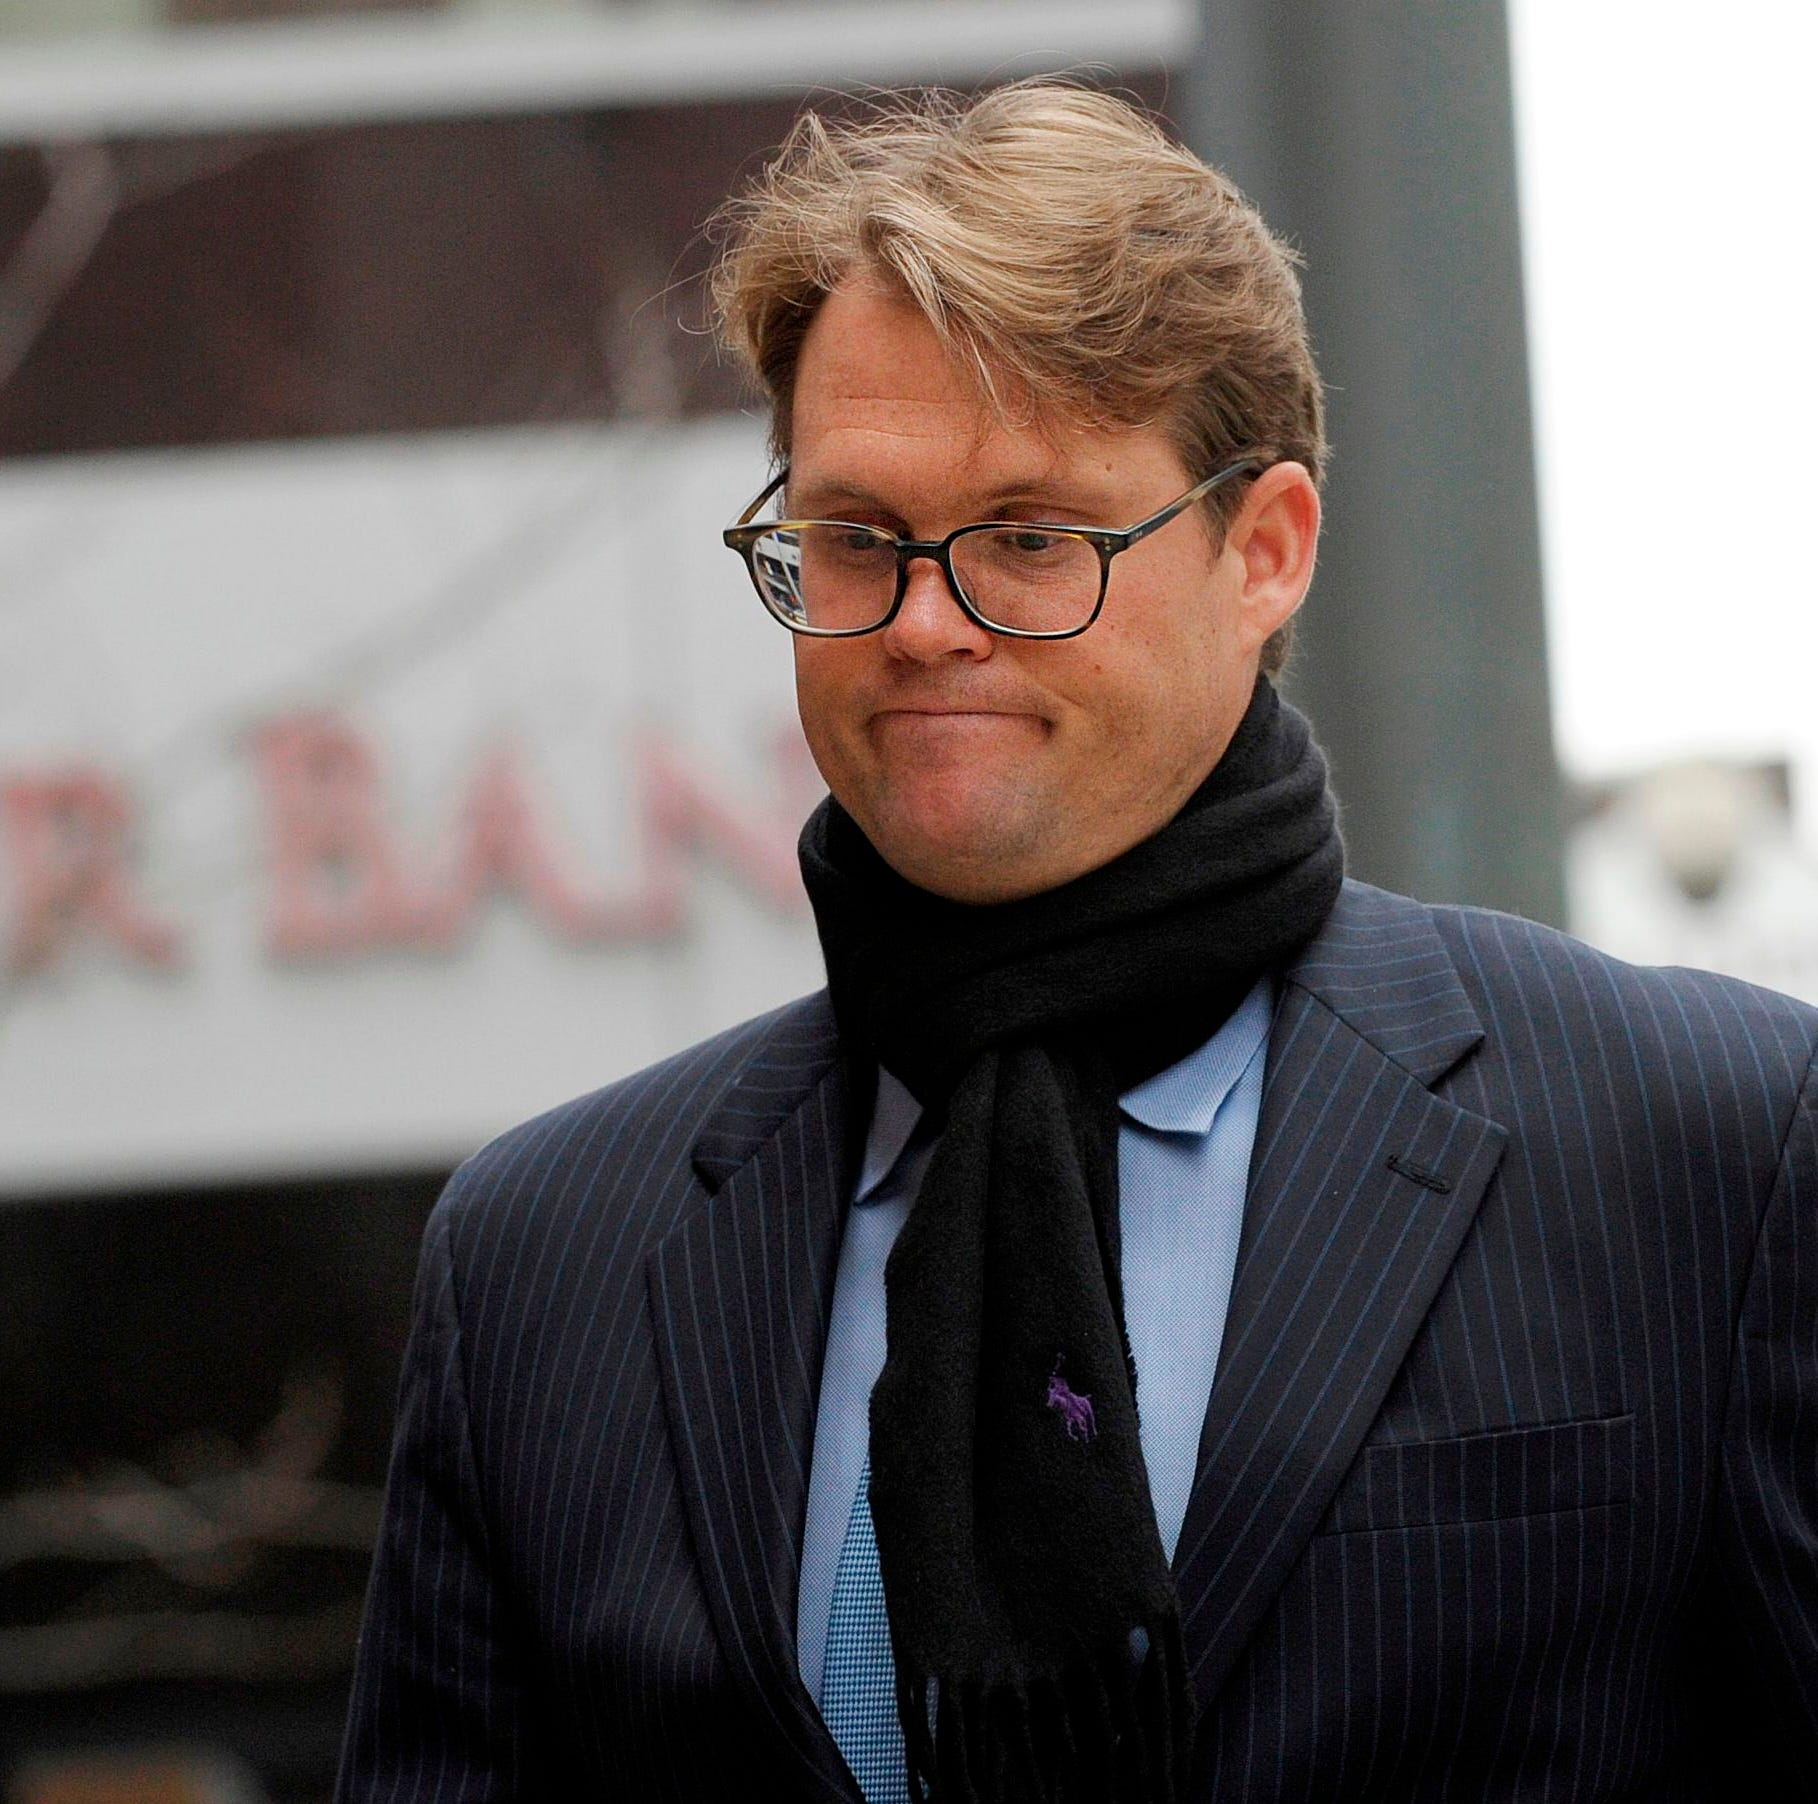 Mark Riddell, test-taker ace in college admissions cheating case, pleads guilty in court